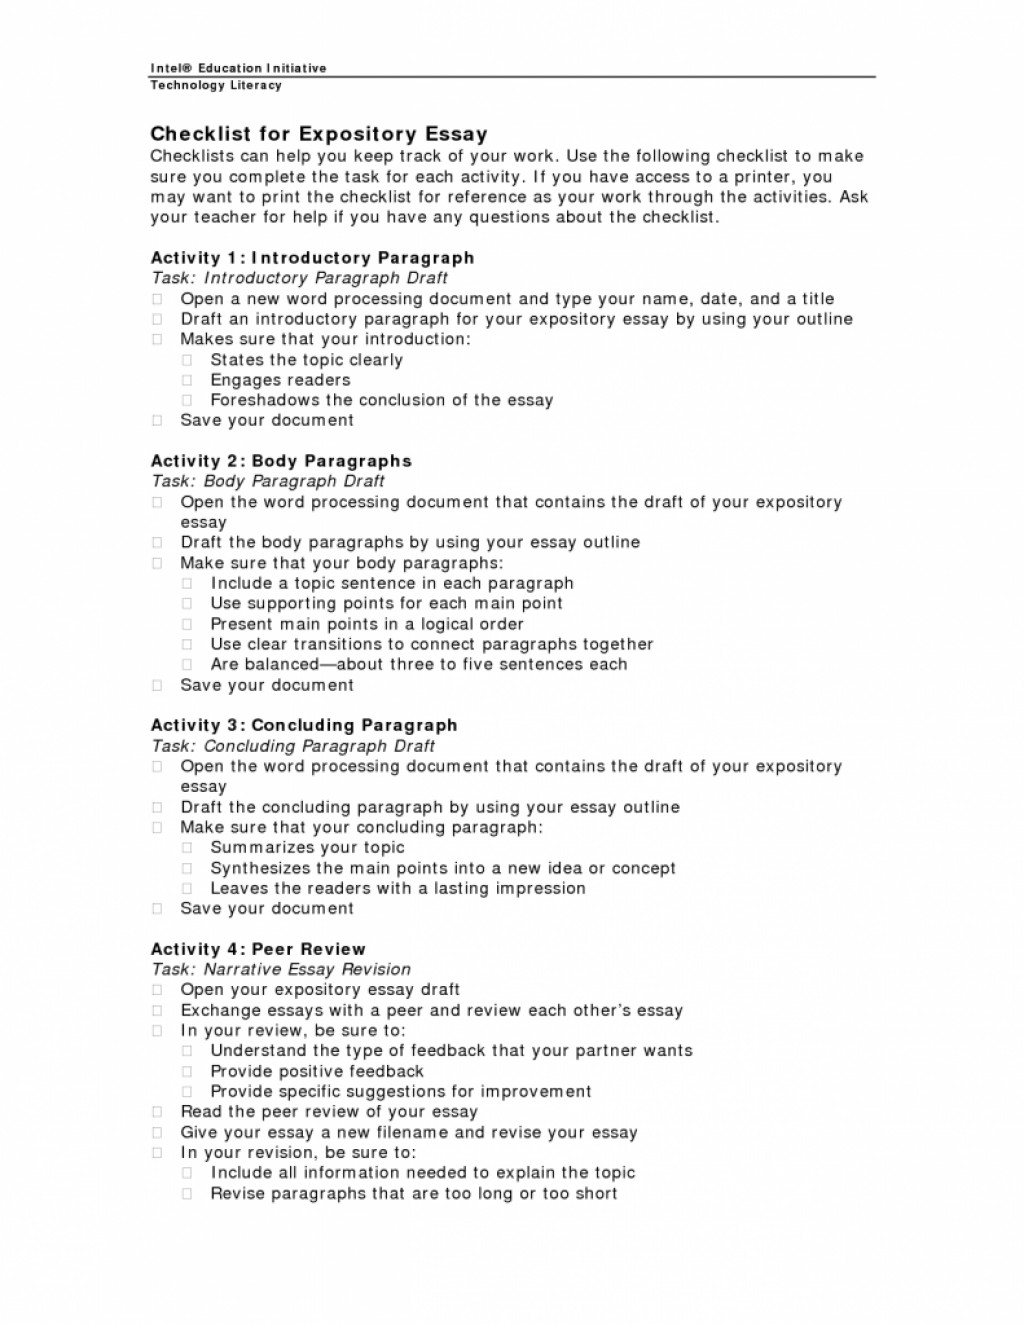 023 Expository Essay Checklist 791x1024 What Is An Magnificent Powerpoint Are Some Topics Gcu Large